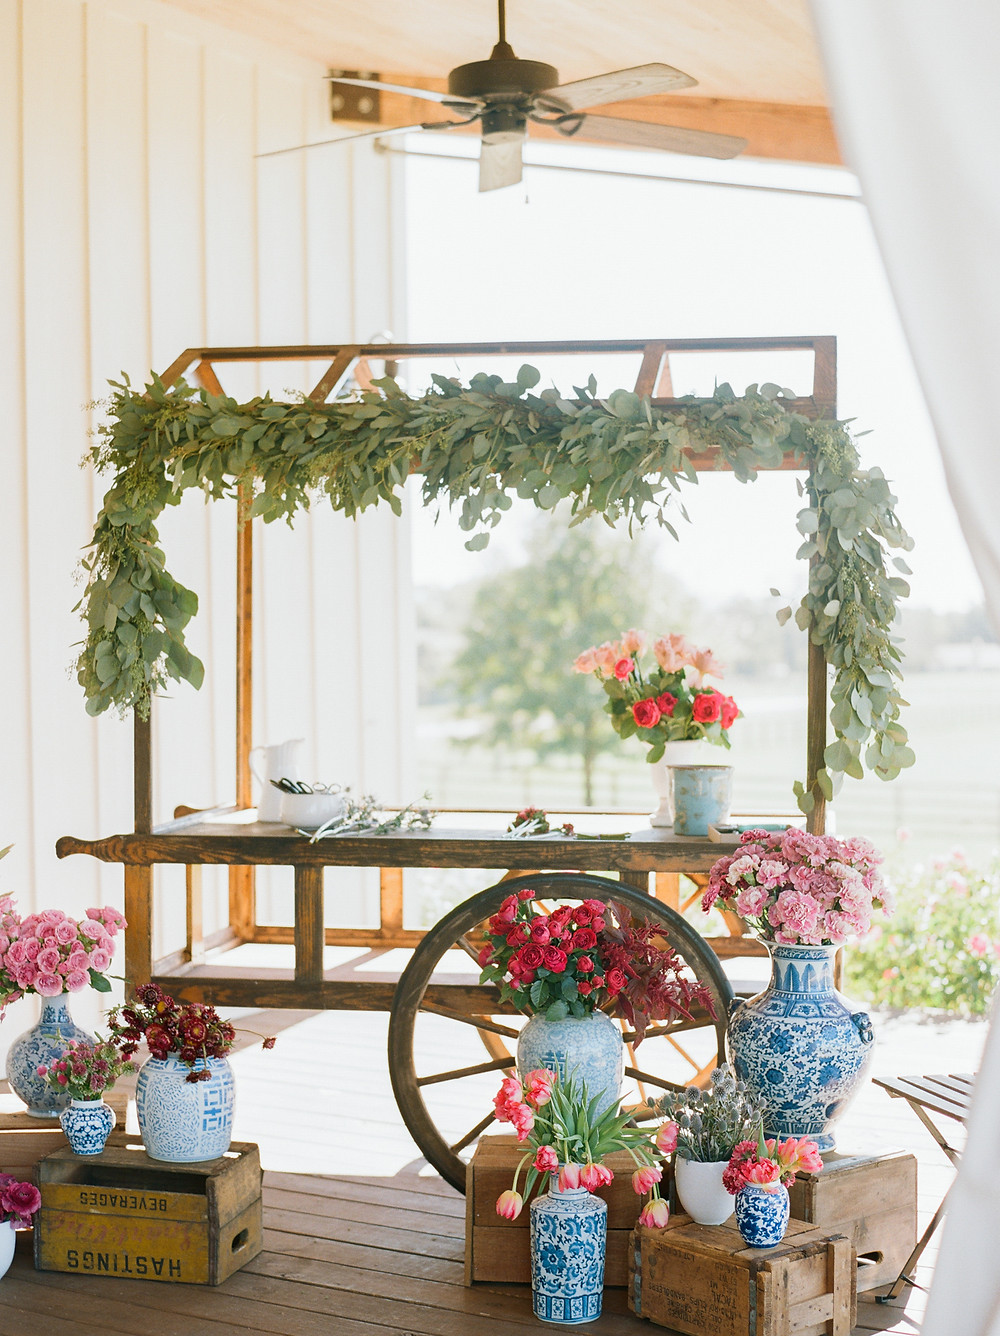 Haute Off the Rack Bridal Shower at The White Magnolia with Lance Nicoll, Angela Marie Events, Poppy + Mint, and Lovegood Wedding & Event Rentals